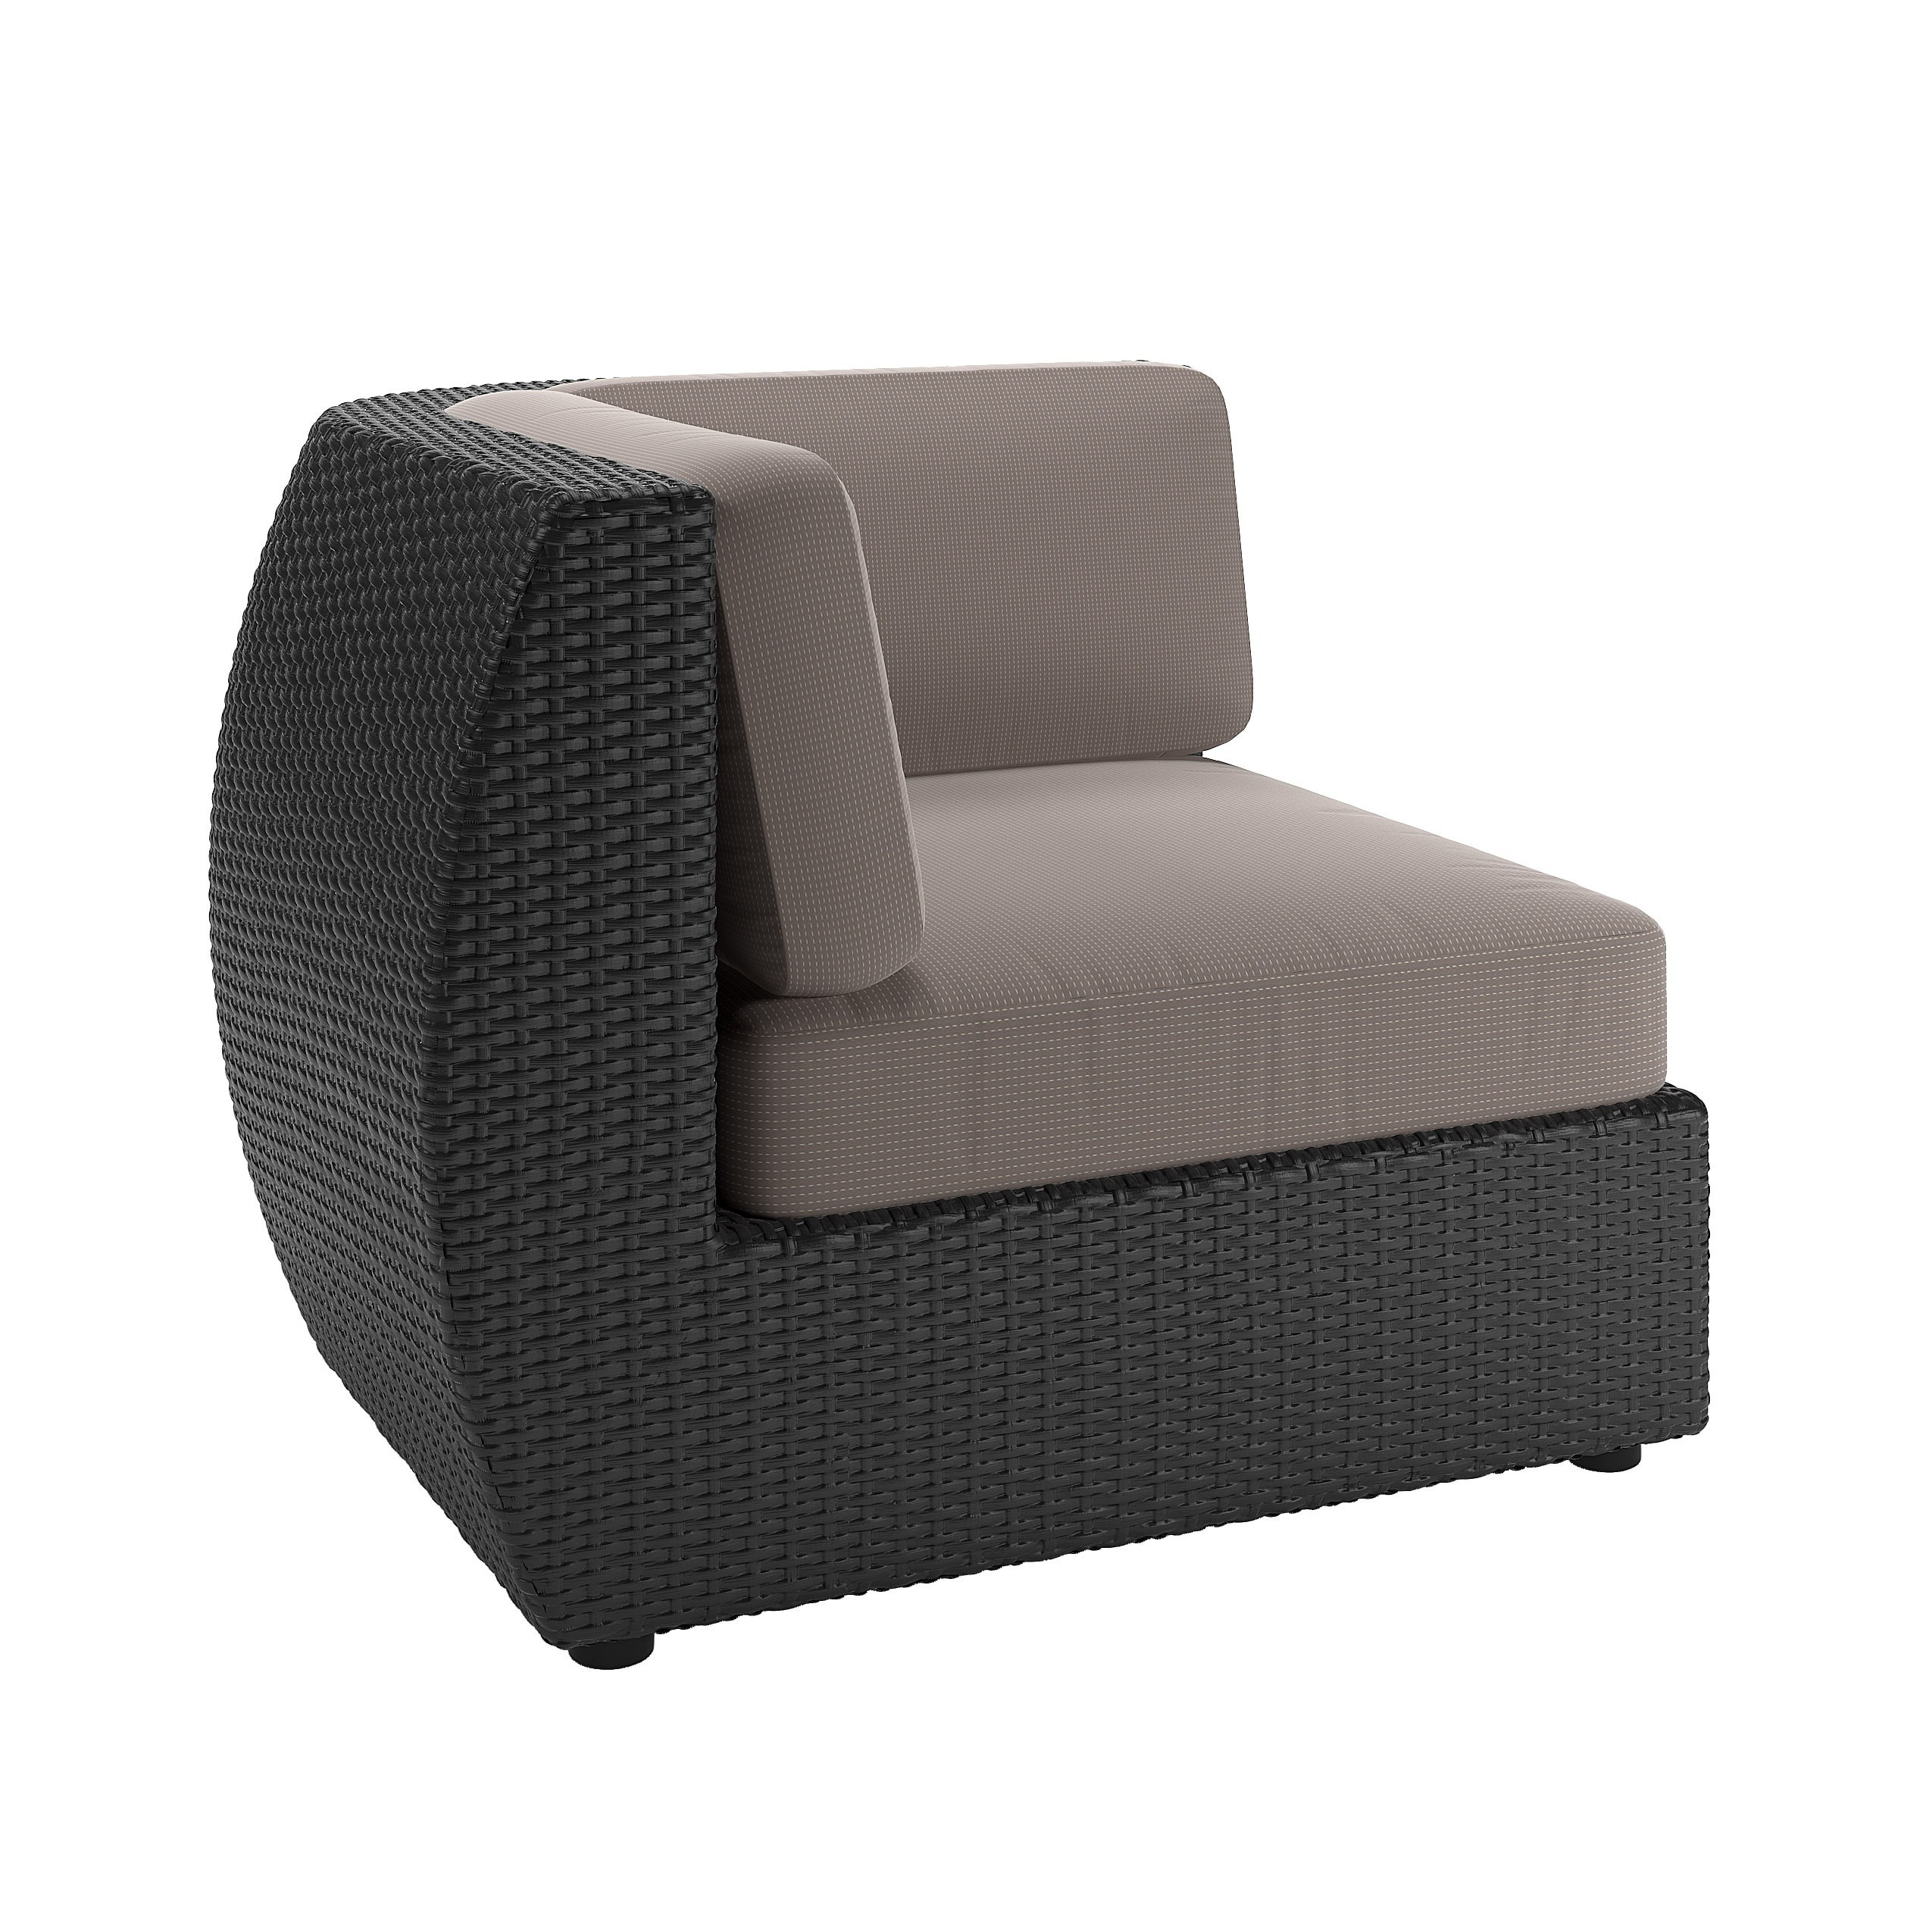 Shop CorLiving Seattle 6 Piece Curved Sectional With Chair Patio Set   Free  Shipping Today   Overstock.com   9009419